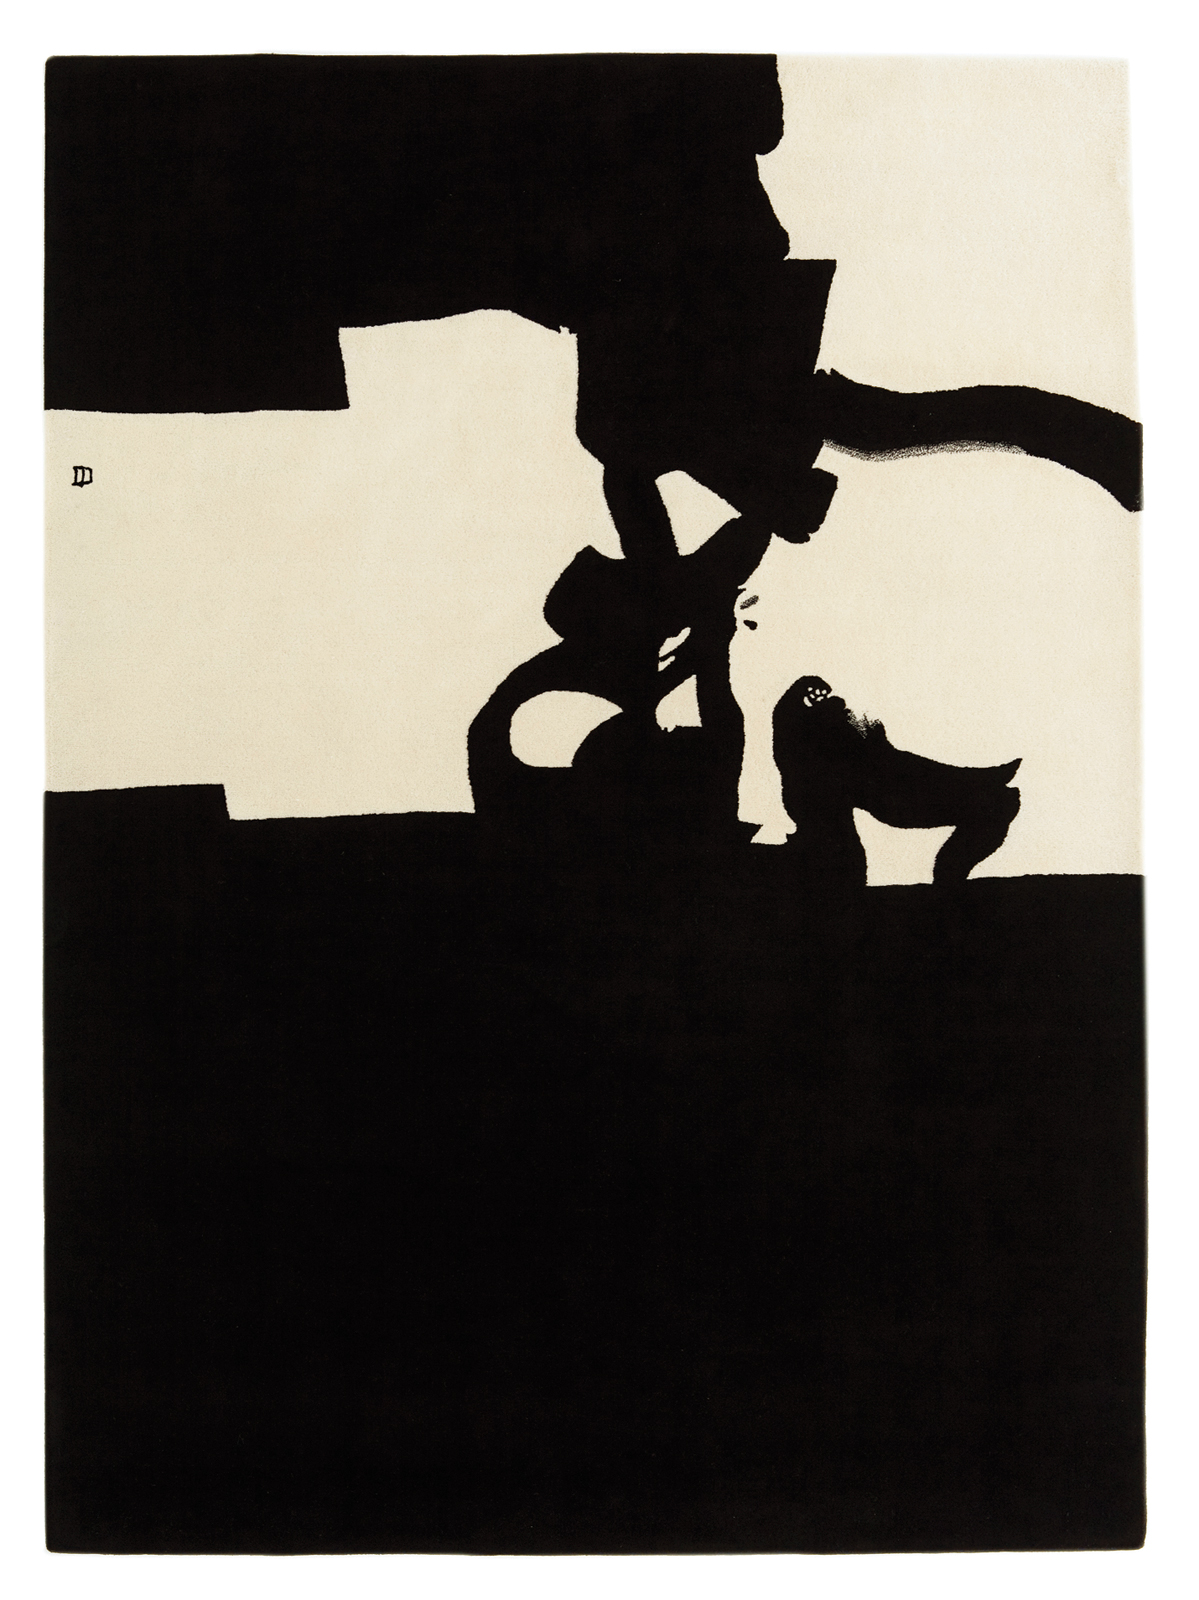 Collage rug based on artwork by Eduardo Chillida